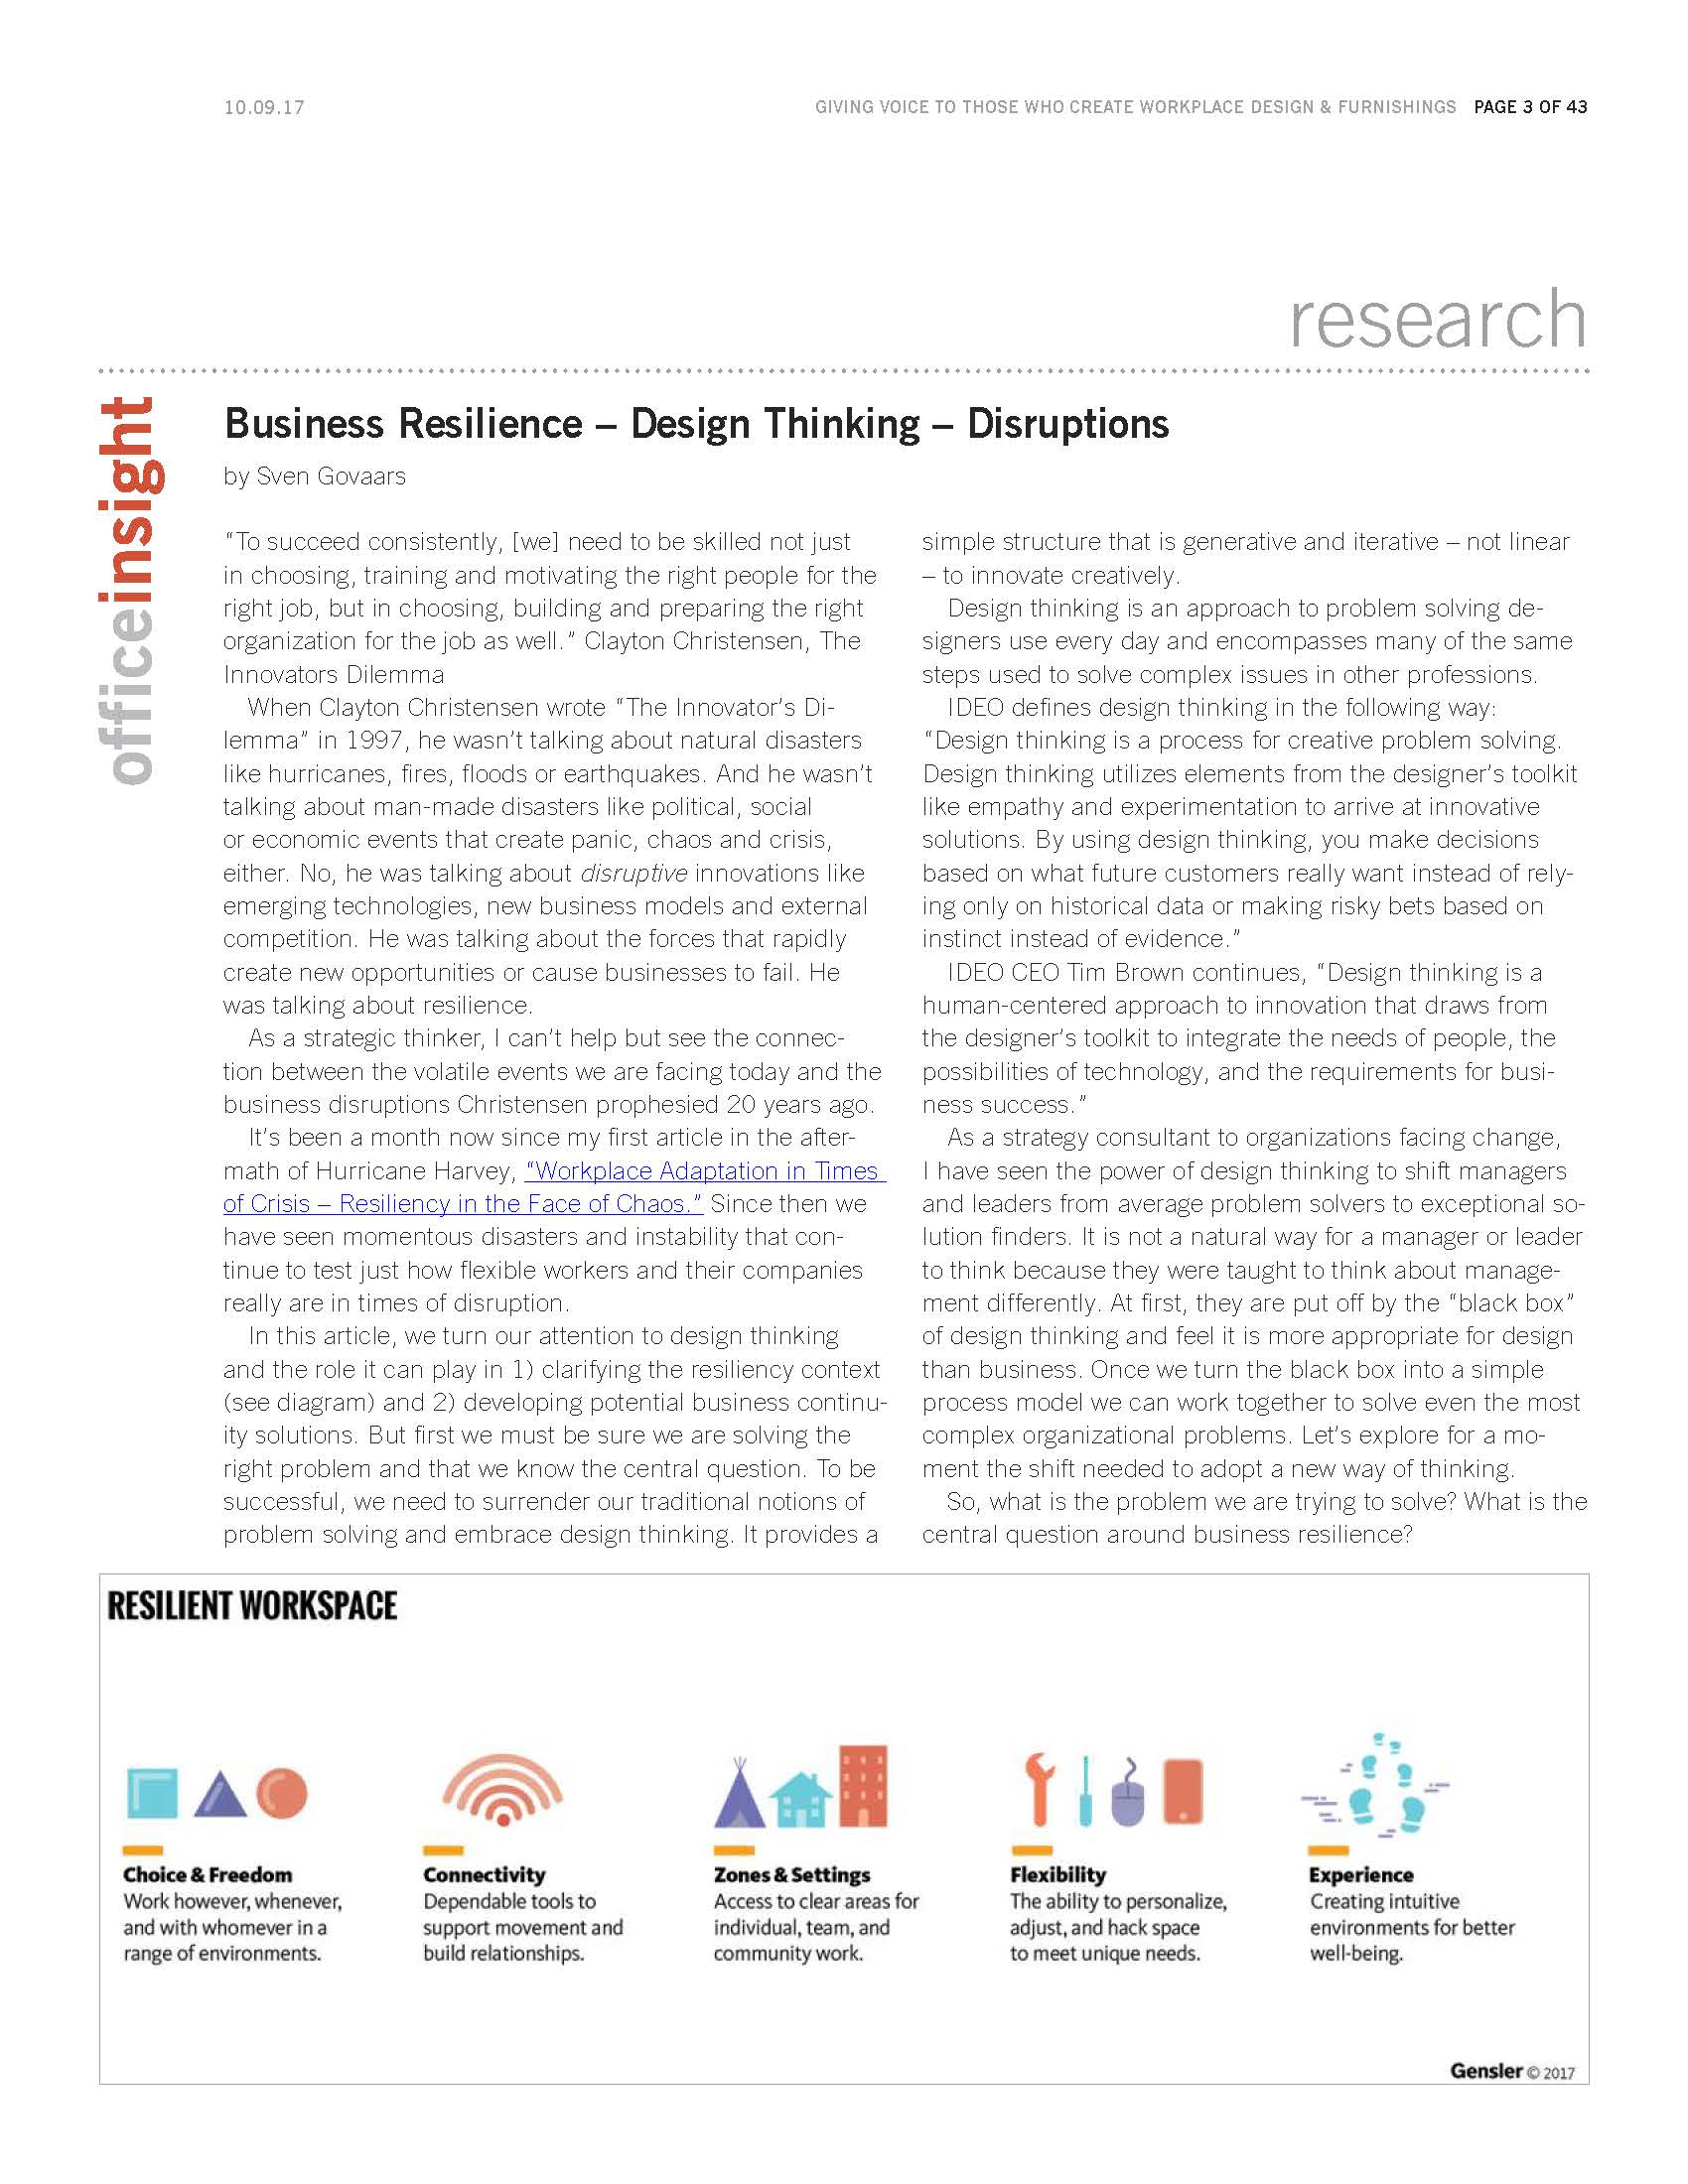 Business Resilience - Design Thinking - Disruptions - Office Insight 10_09_2017 LR_Page_2.jpg